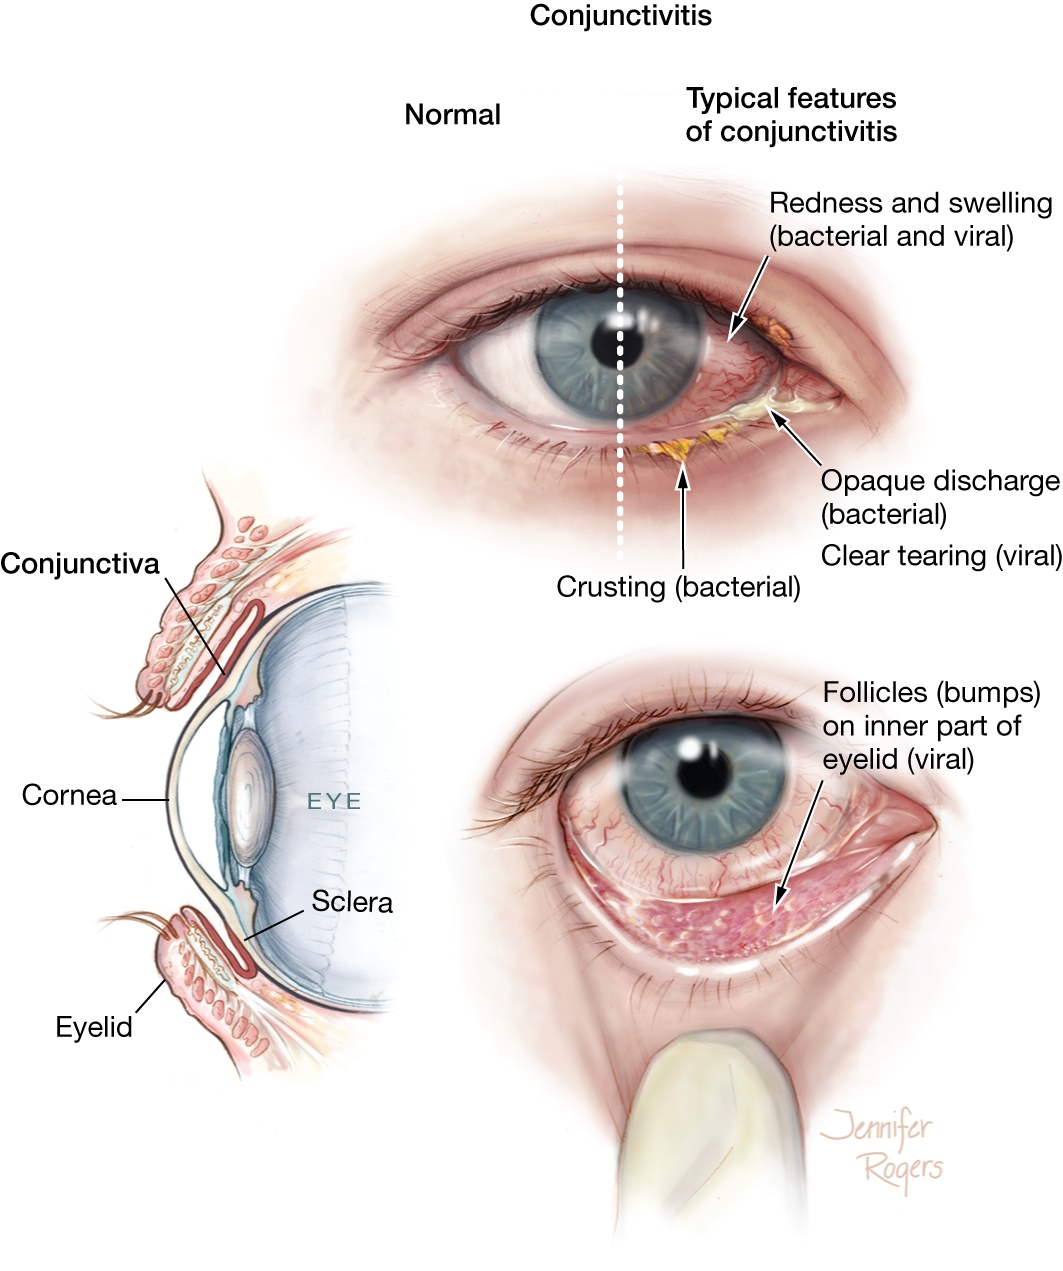 Conjunctivitis External Eye Disease Jama Jama Network